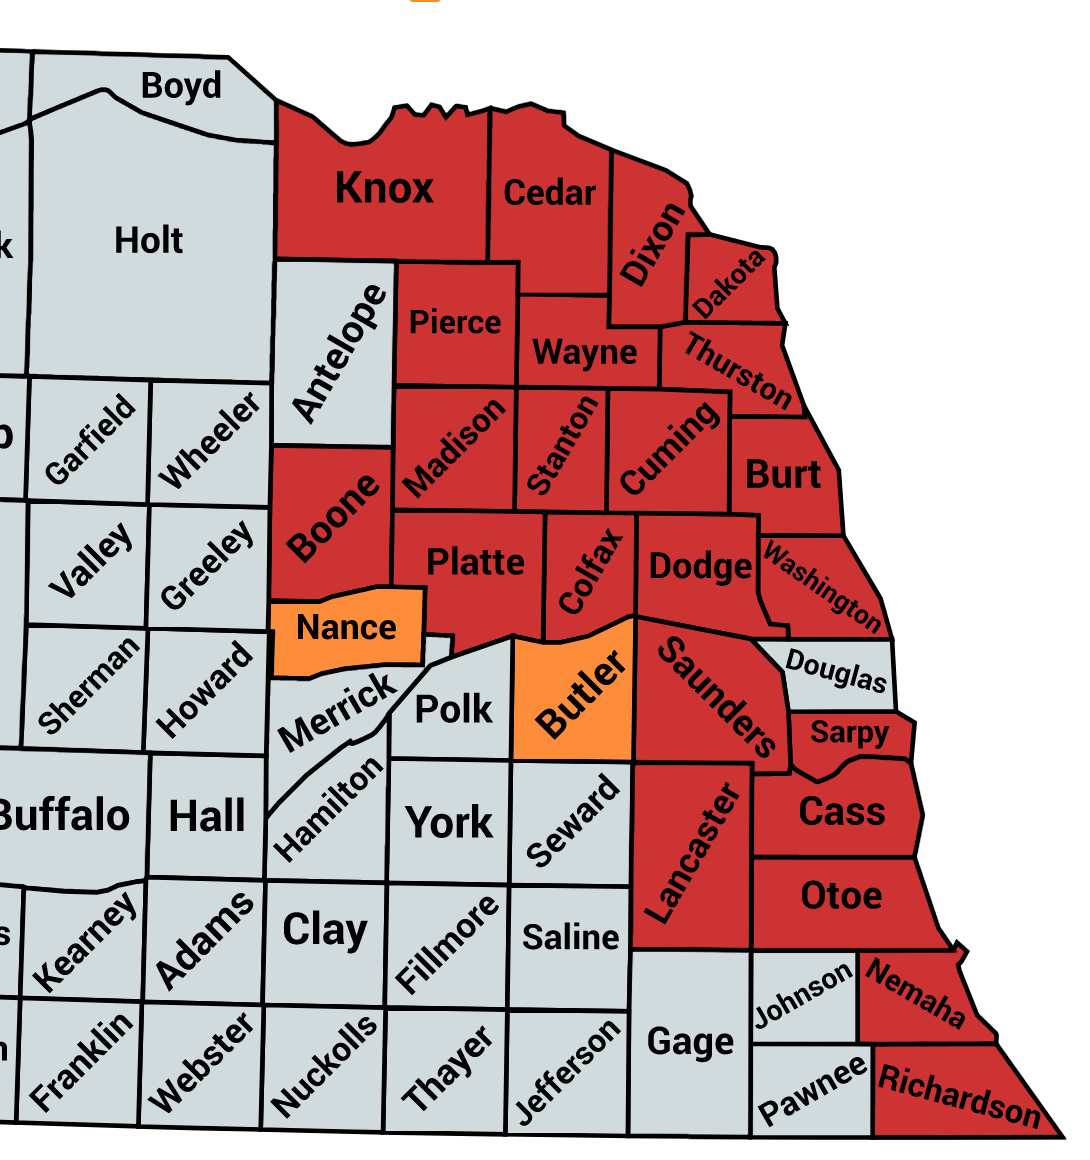 Nebraska county map showing soybean gall midge infestations